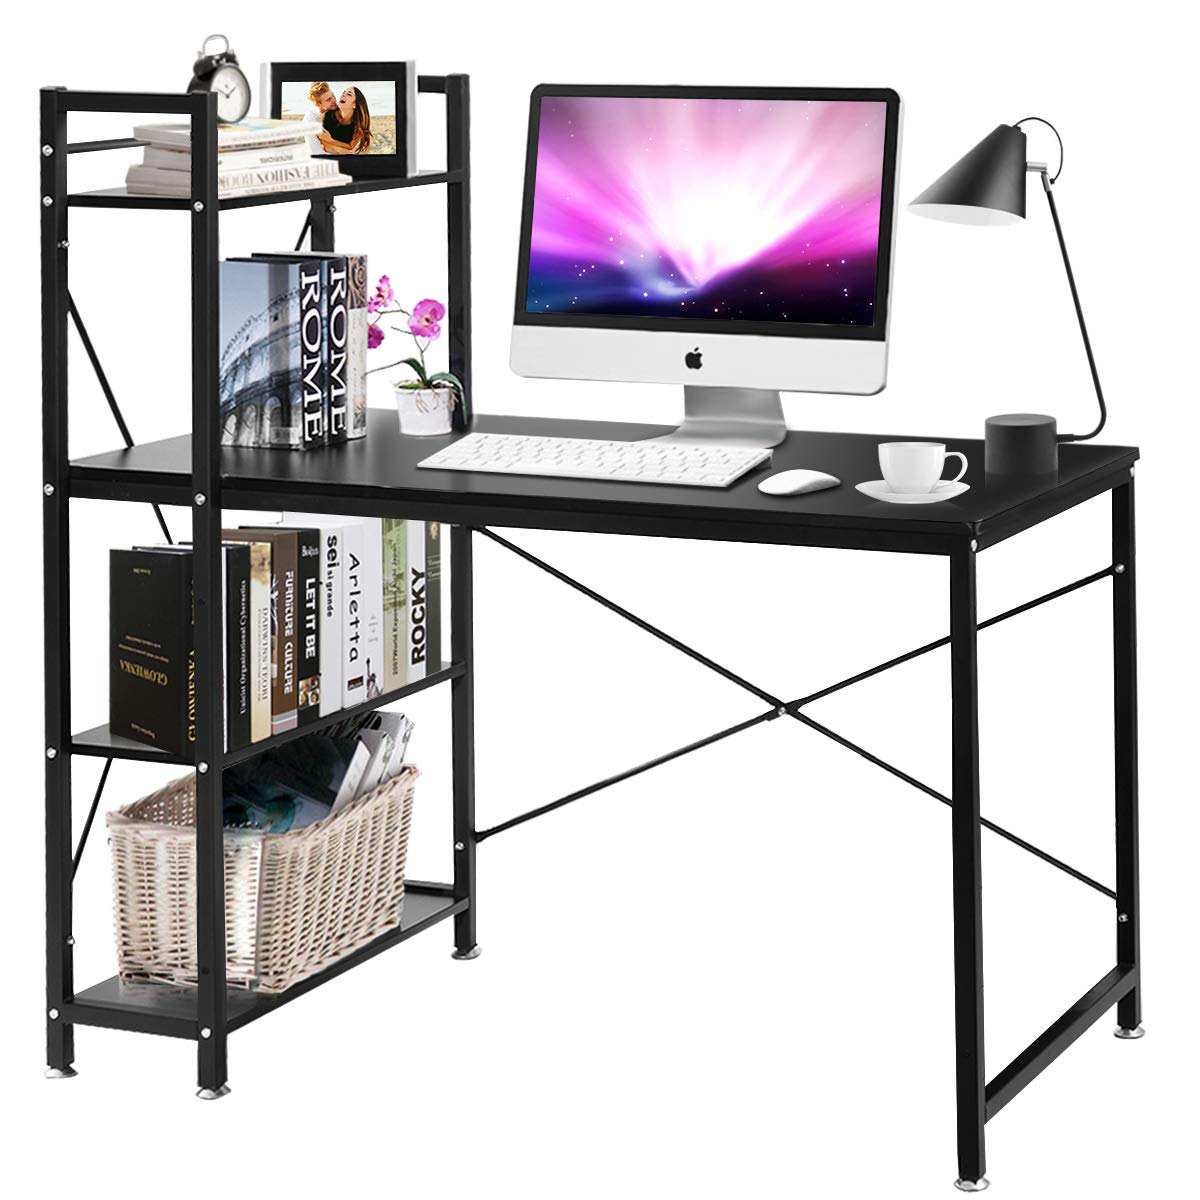 Tangkula 47.5'' Computer Desk, Modern Style Writing Study Table with 4 Tier Bookshelves, Home Office Desk, Compact Gaming Desk, Multipurpose PC Workstation(Black)